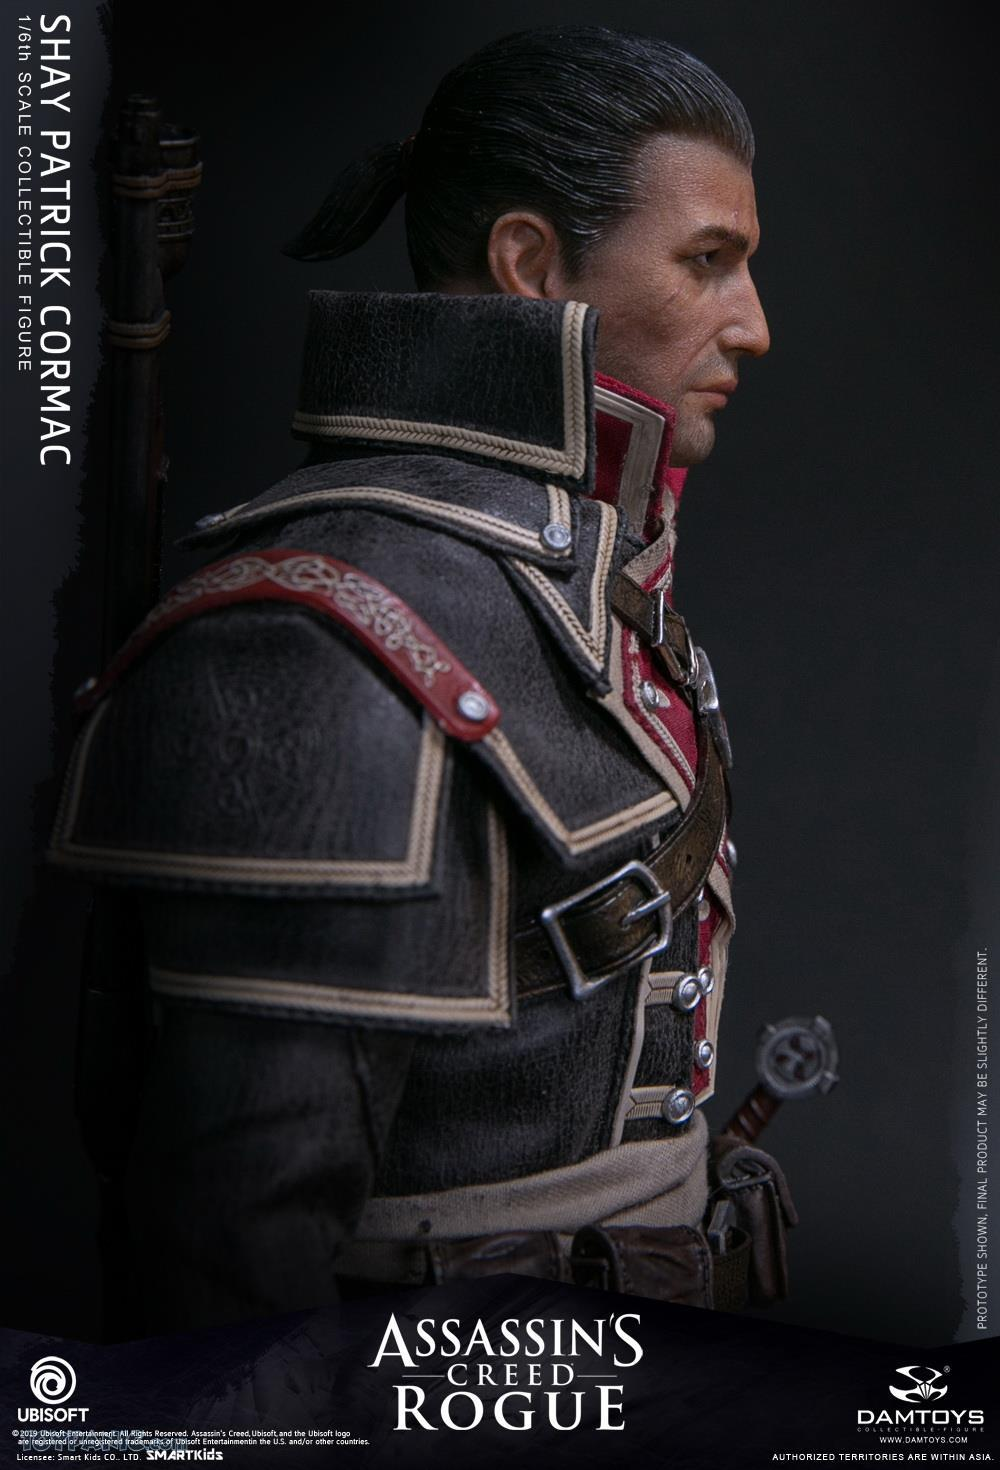 male - NEW PRODUCT: DAMTOYS: Assassins Creed Rogue - 1/6th scale Shay Patrick Cormac Collectible Figure 82220126